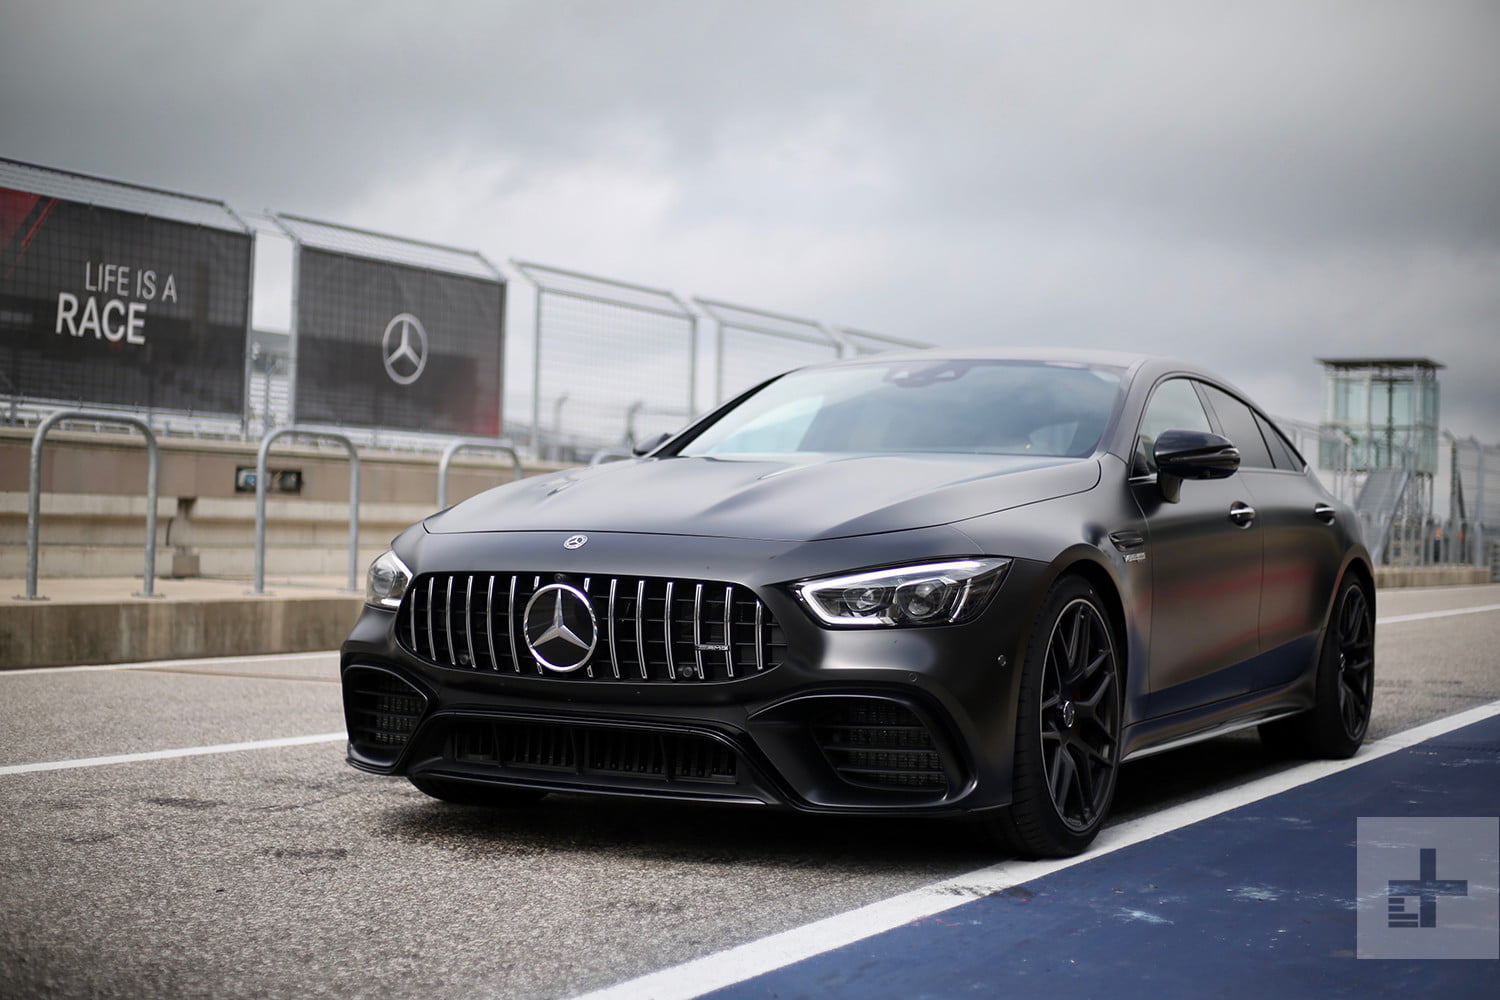 mercedes amg gt 73 plug in hybrid revs with 805 hp report says warehouse discounts. Black Bedroom Furniture Sets. Home Design Ideas